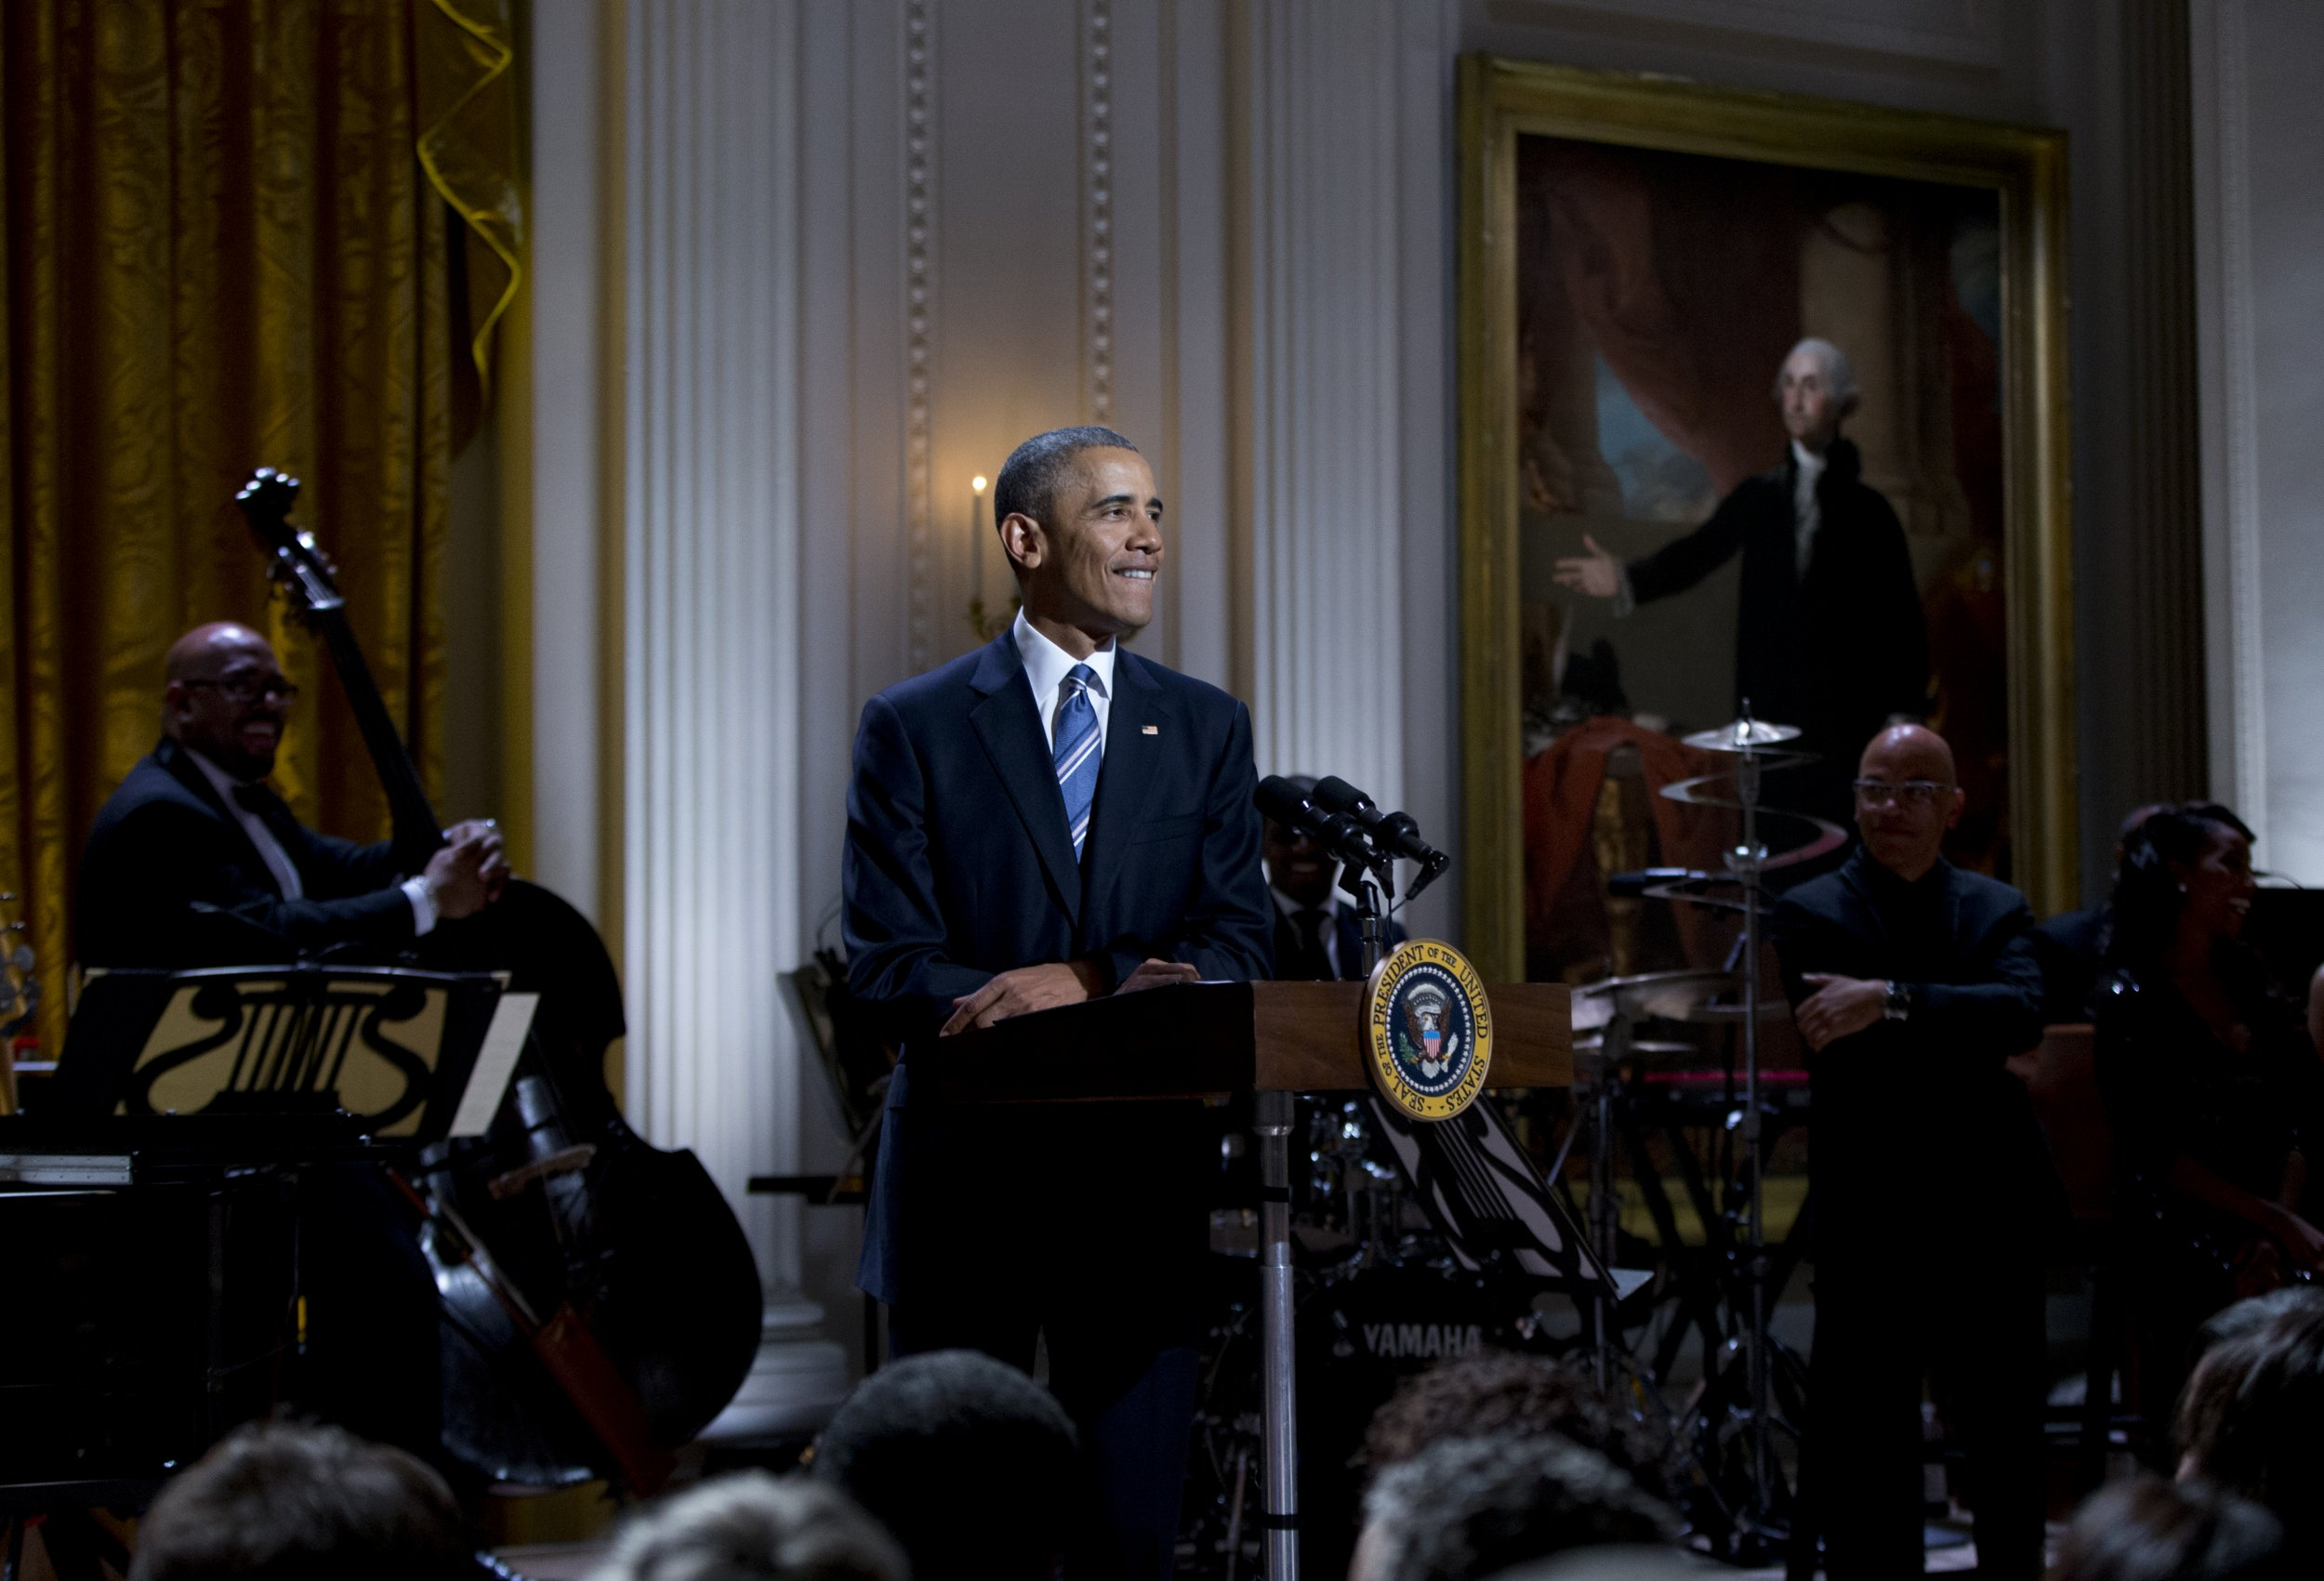 President Barack Obama pauses as he speaks as he and first lady Michelle Obama host the In Performance at the White House series in the East Room of the White House, in Washington, Wednesday, Feb. 24, 2016. The event celebrates the iconic singer, songwriter, composer and musician Ray Charles. (AP Photo/Carolyn Kaster)